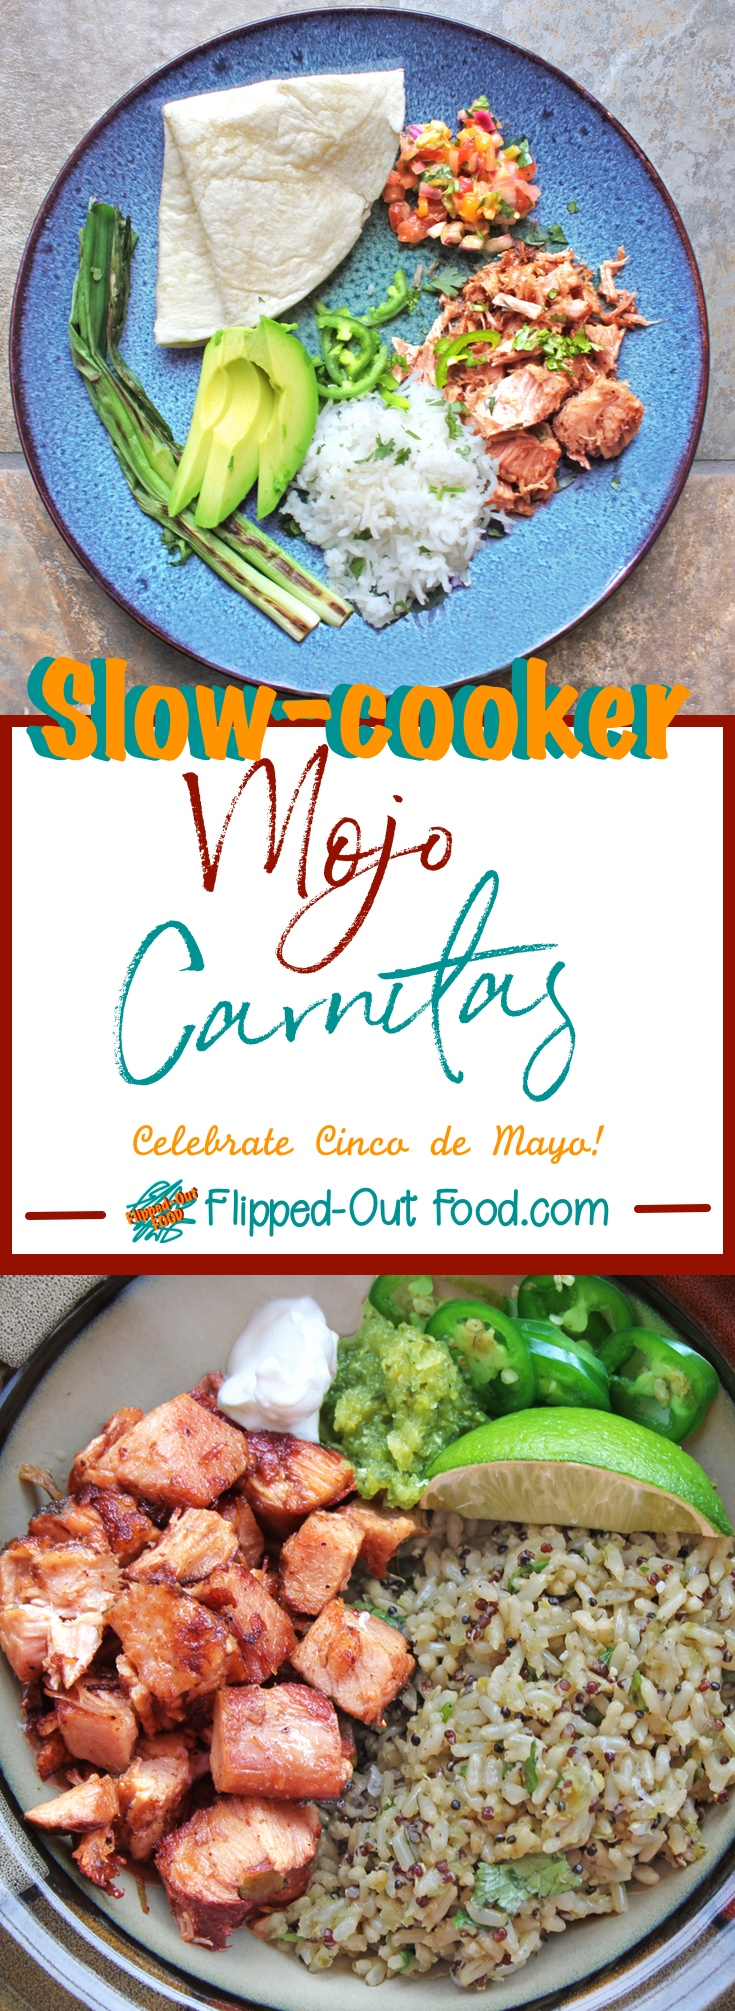 Slow-Cooker Mojo Carnitas are an easy weeknight meal, but flashy enough for a weekend dinner party. Great for serving buffet-style to a crowd! #carnitas #mexicanfood #slowcooker #crockpot #partyfood #cincodemayo